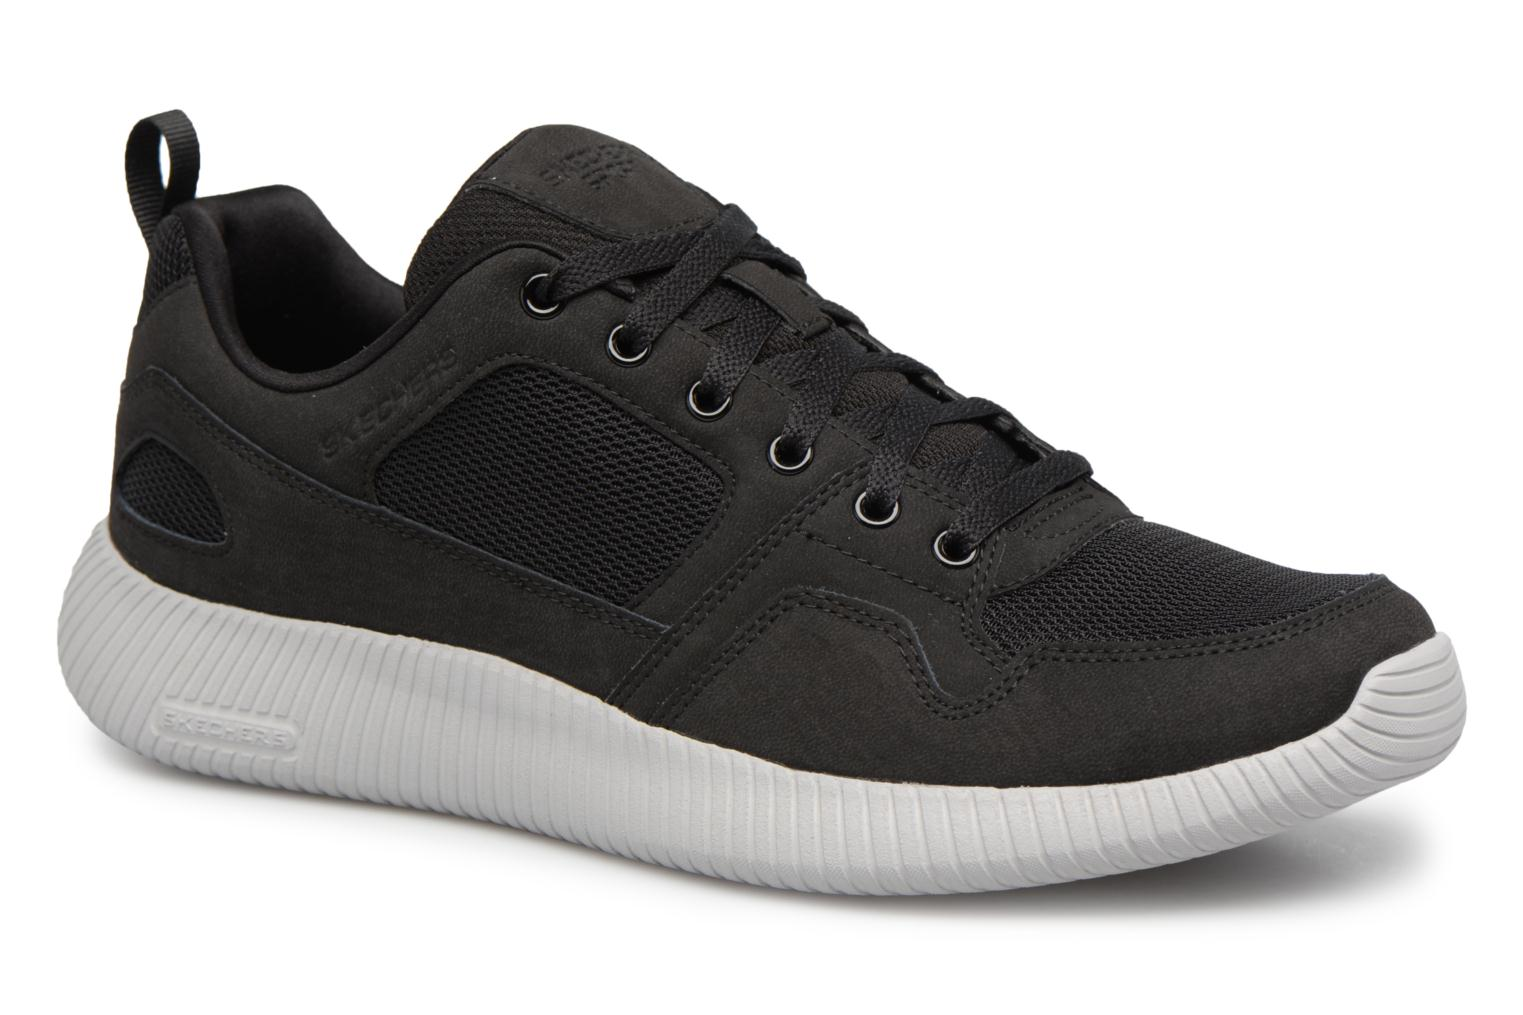 Marques Chaussure homme Skechers homme Depth Charcoalge-Eaddy Black